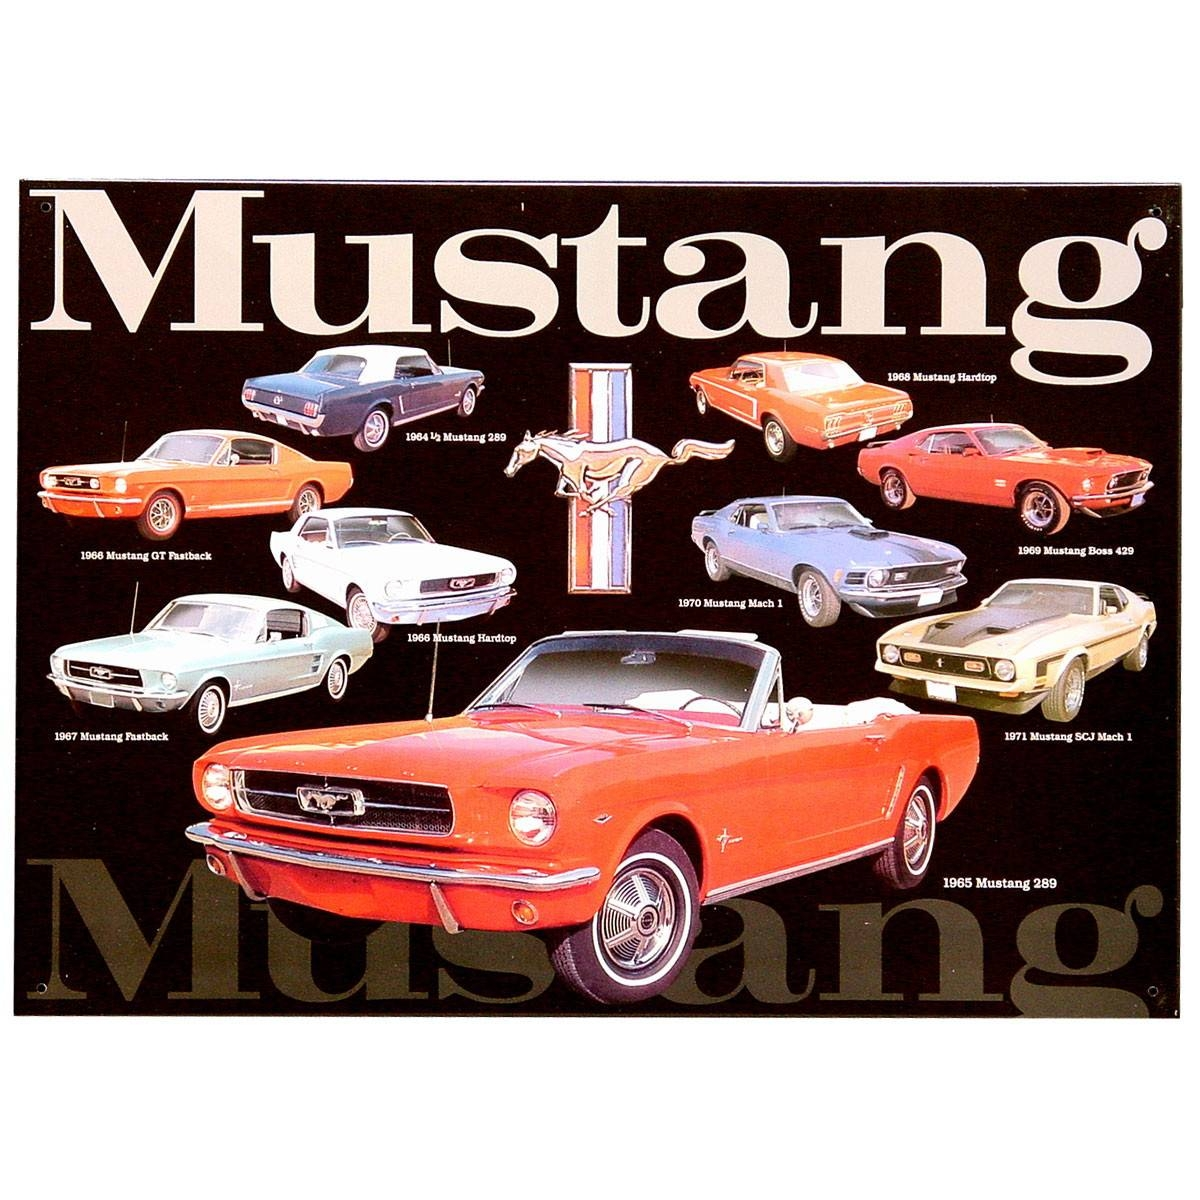 Mustang Collage Metal Sign | Ford Garage Signs | Retroplanet With Regard To Latest Ford Mustang Metal Wall Art (View 10 of 20)